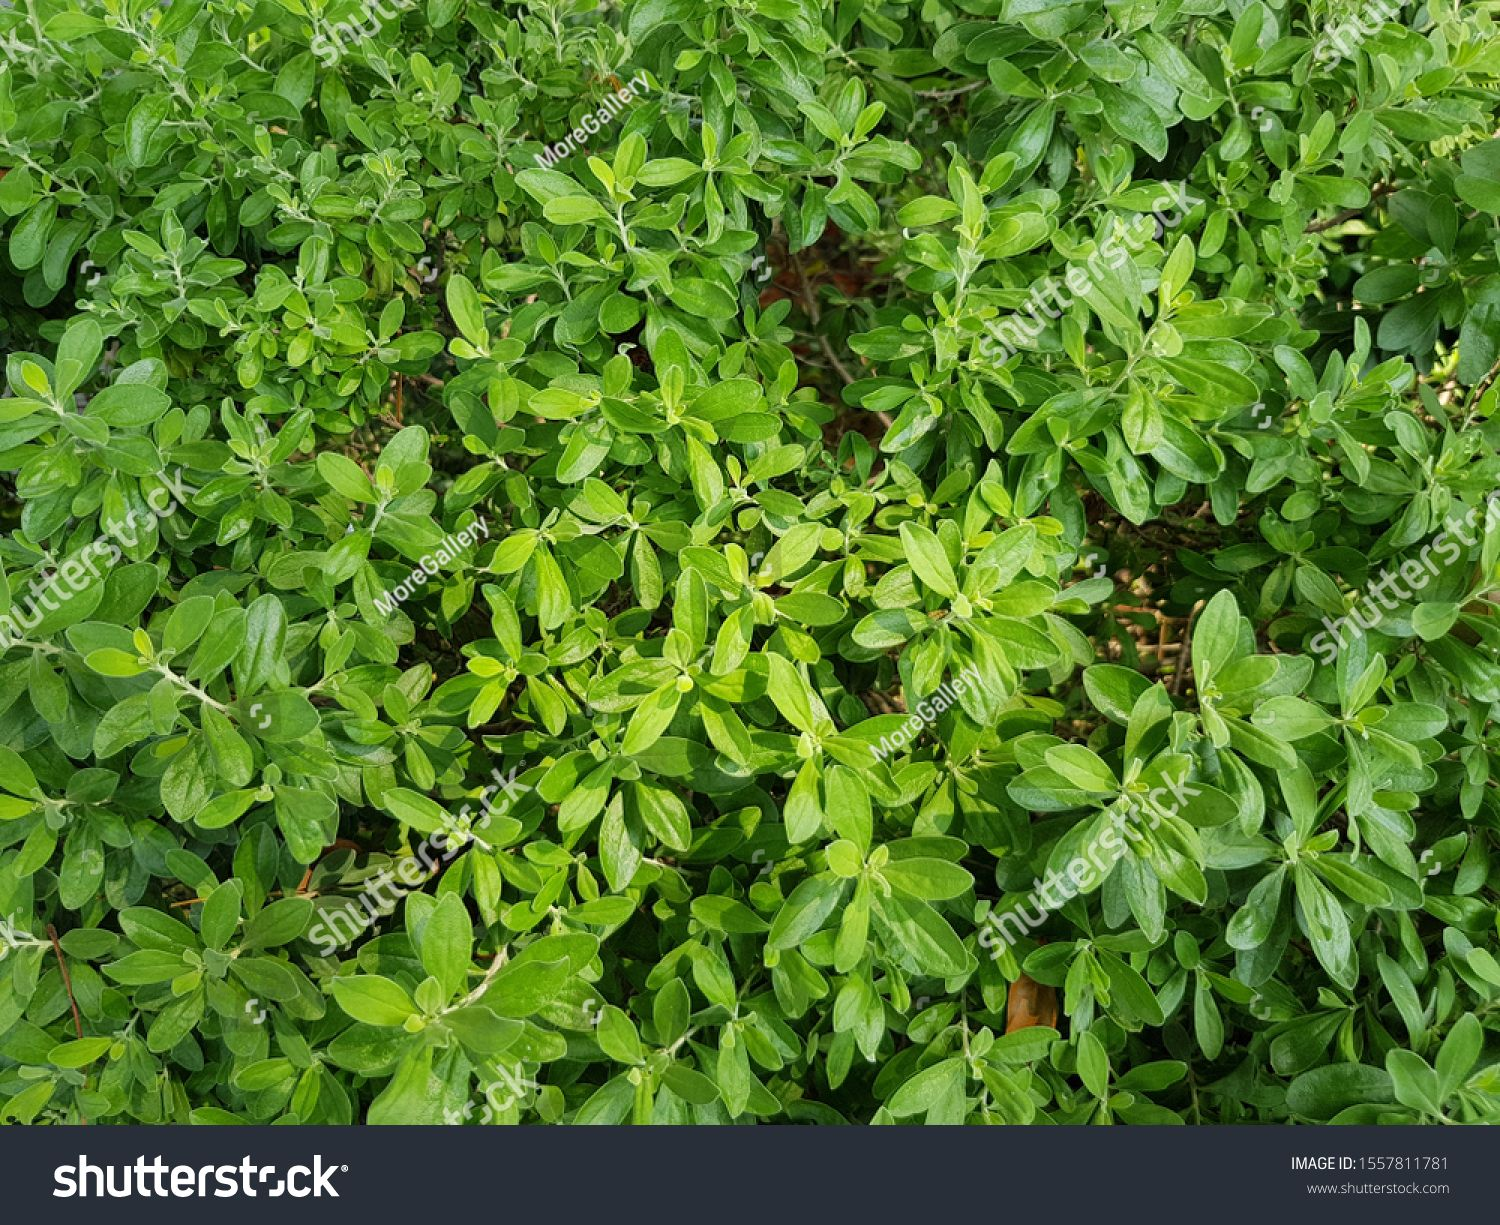 Greenery Natural Plant Background Home Garden Backdrop Fresh Nature Ad Sponsored Plant Background Greenery Na In 2020 With Images Garden Backdrops Plant Background Plants